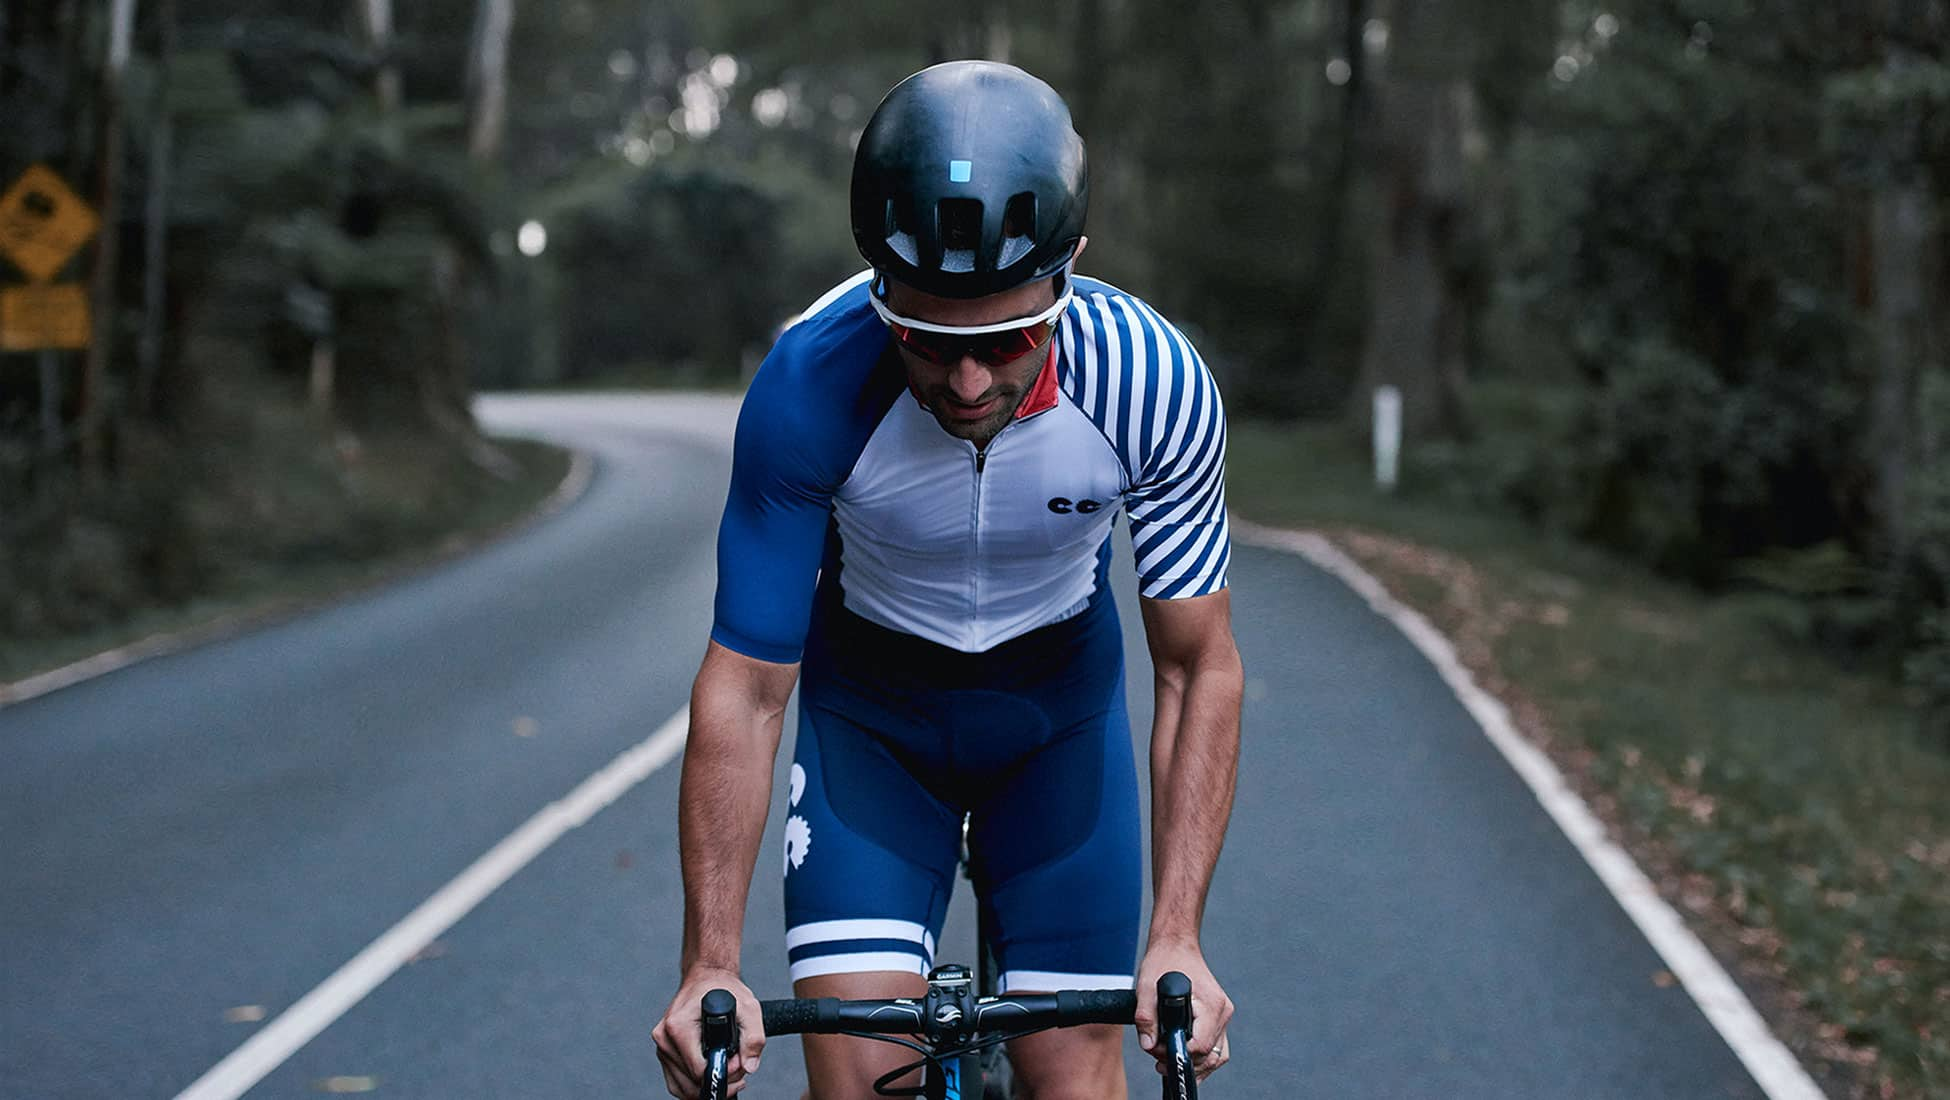 breton stripe cycling kit